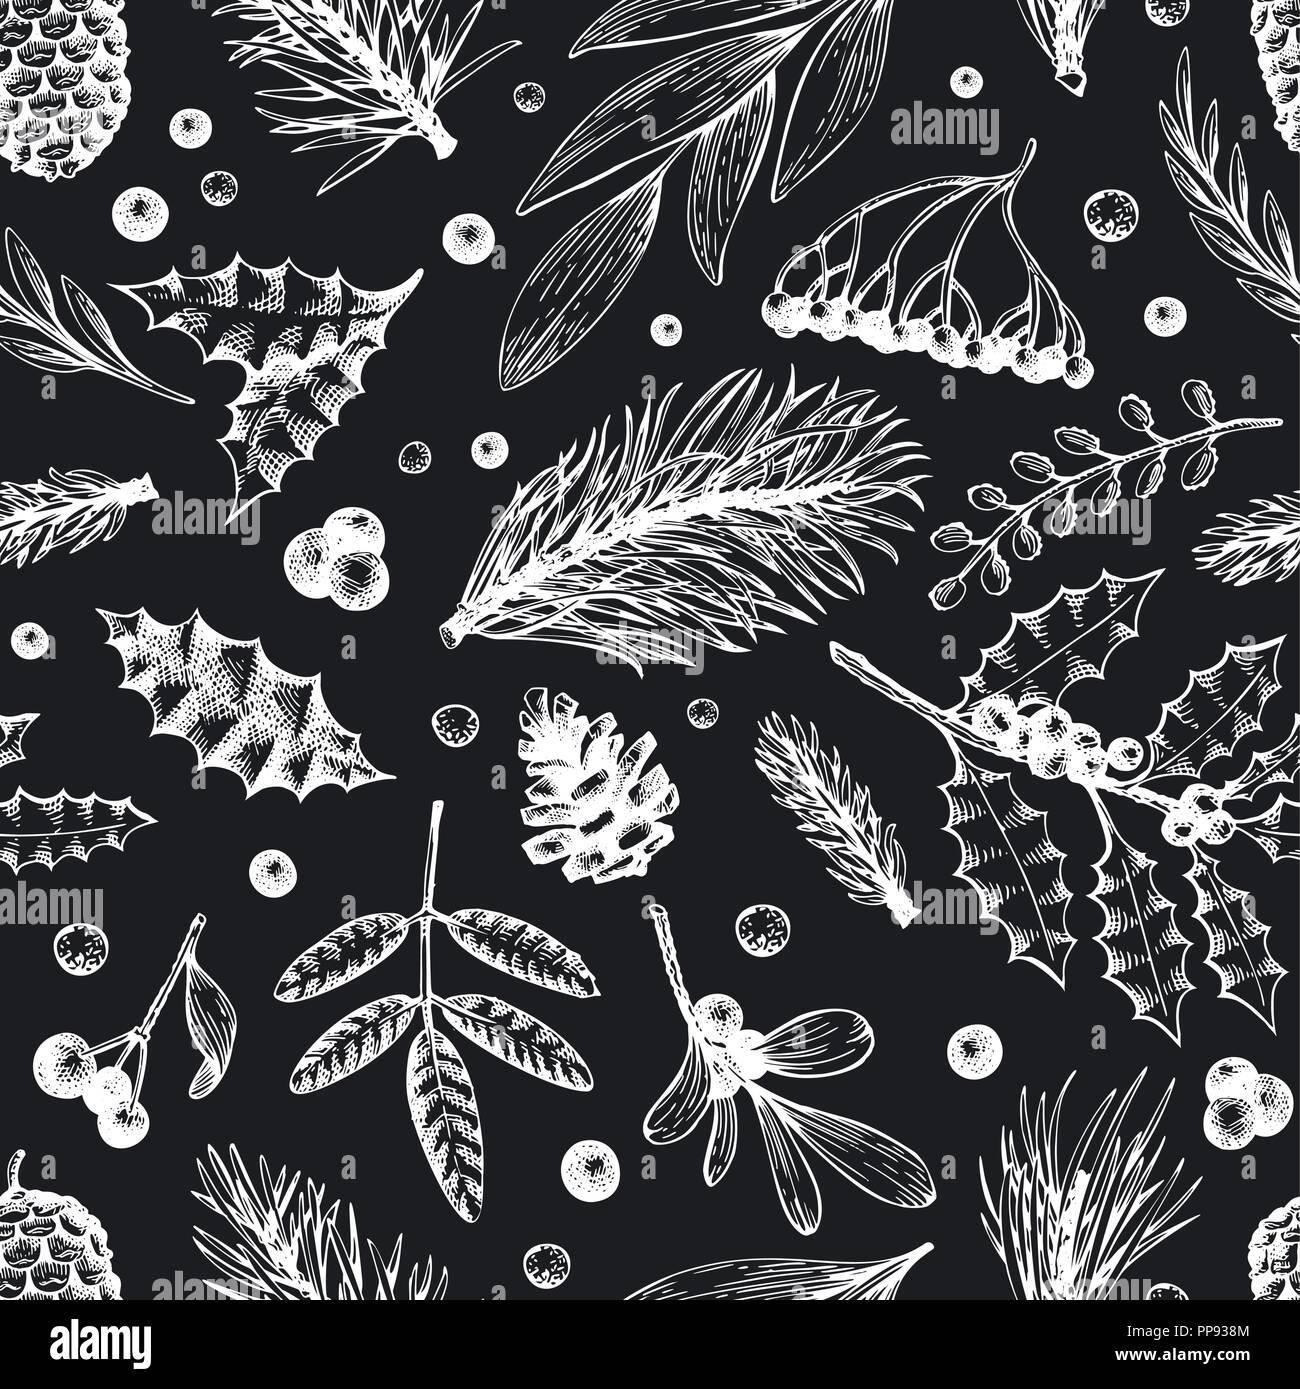 Vector Christmas seamless pattern. Hand drawn winter illustrations on chalk board. Banner with coniferous, pine branches, berries, holly, mistletoe in retro style. Merry Christmas background. - Stock Vector